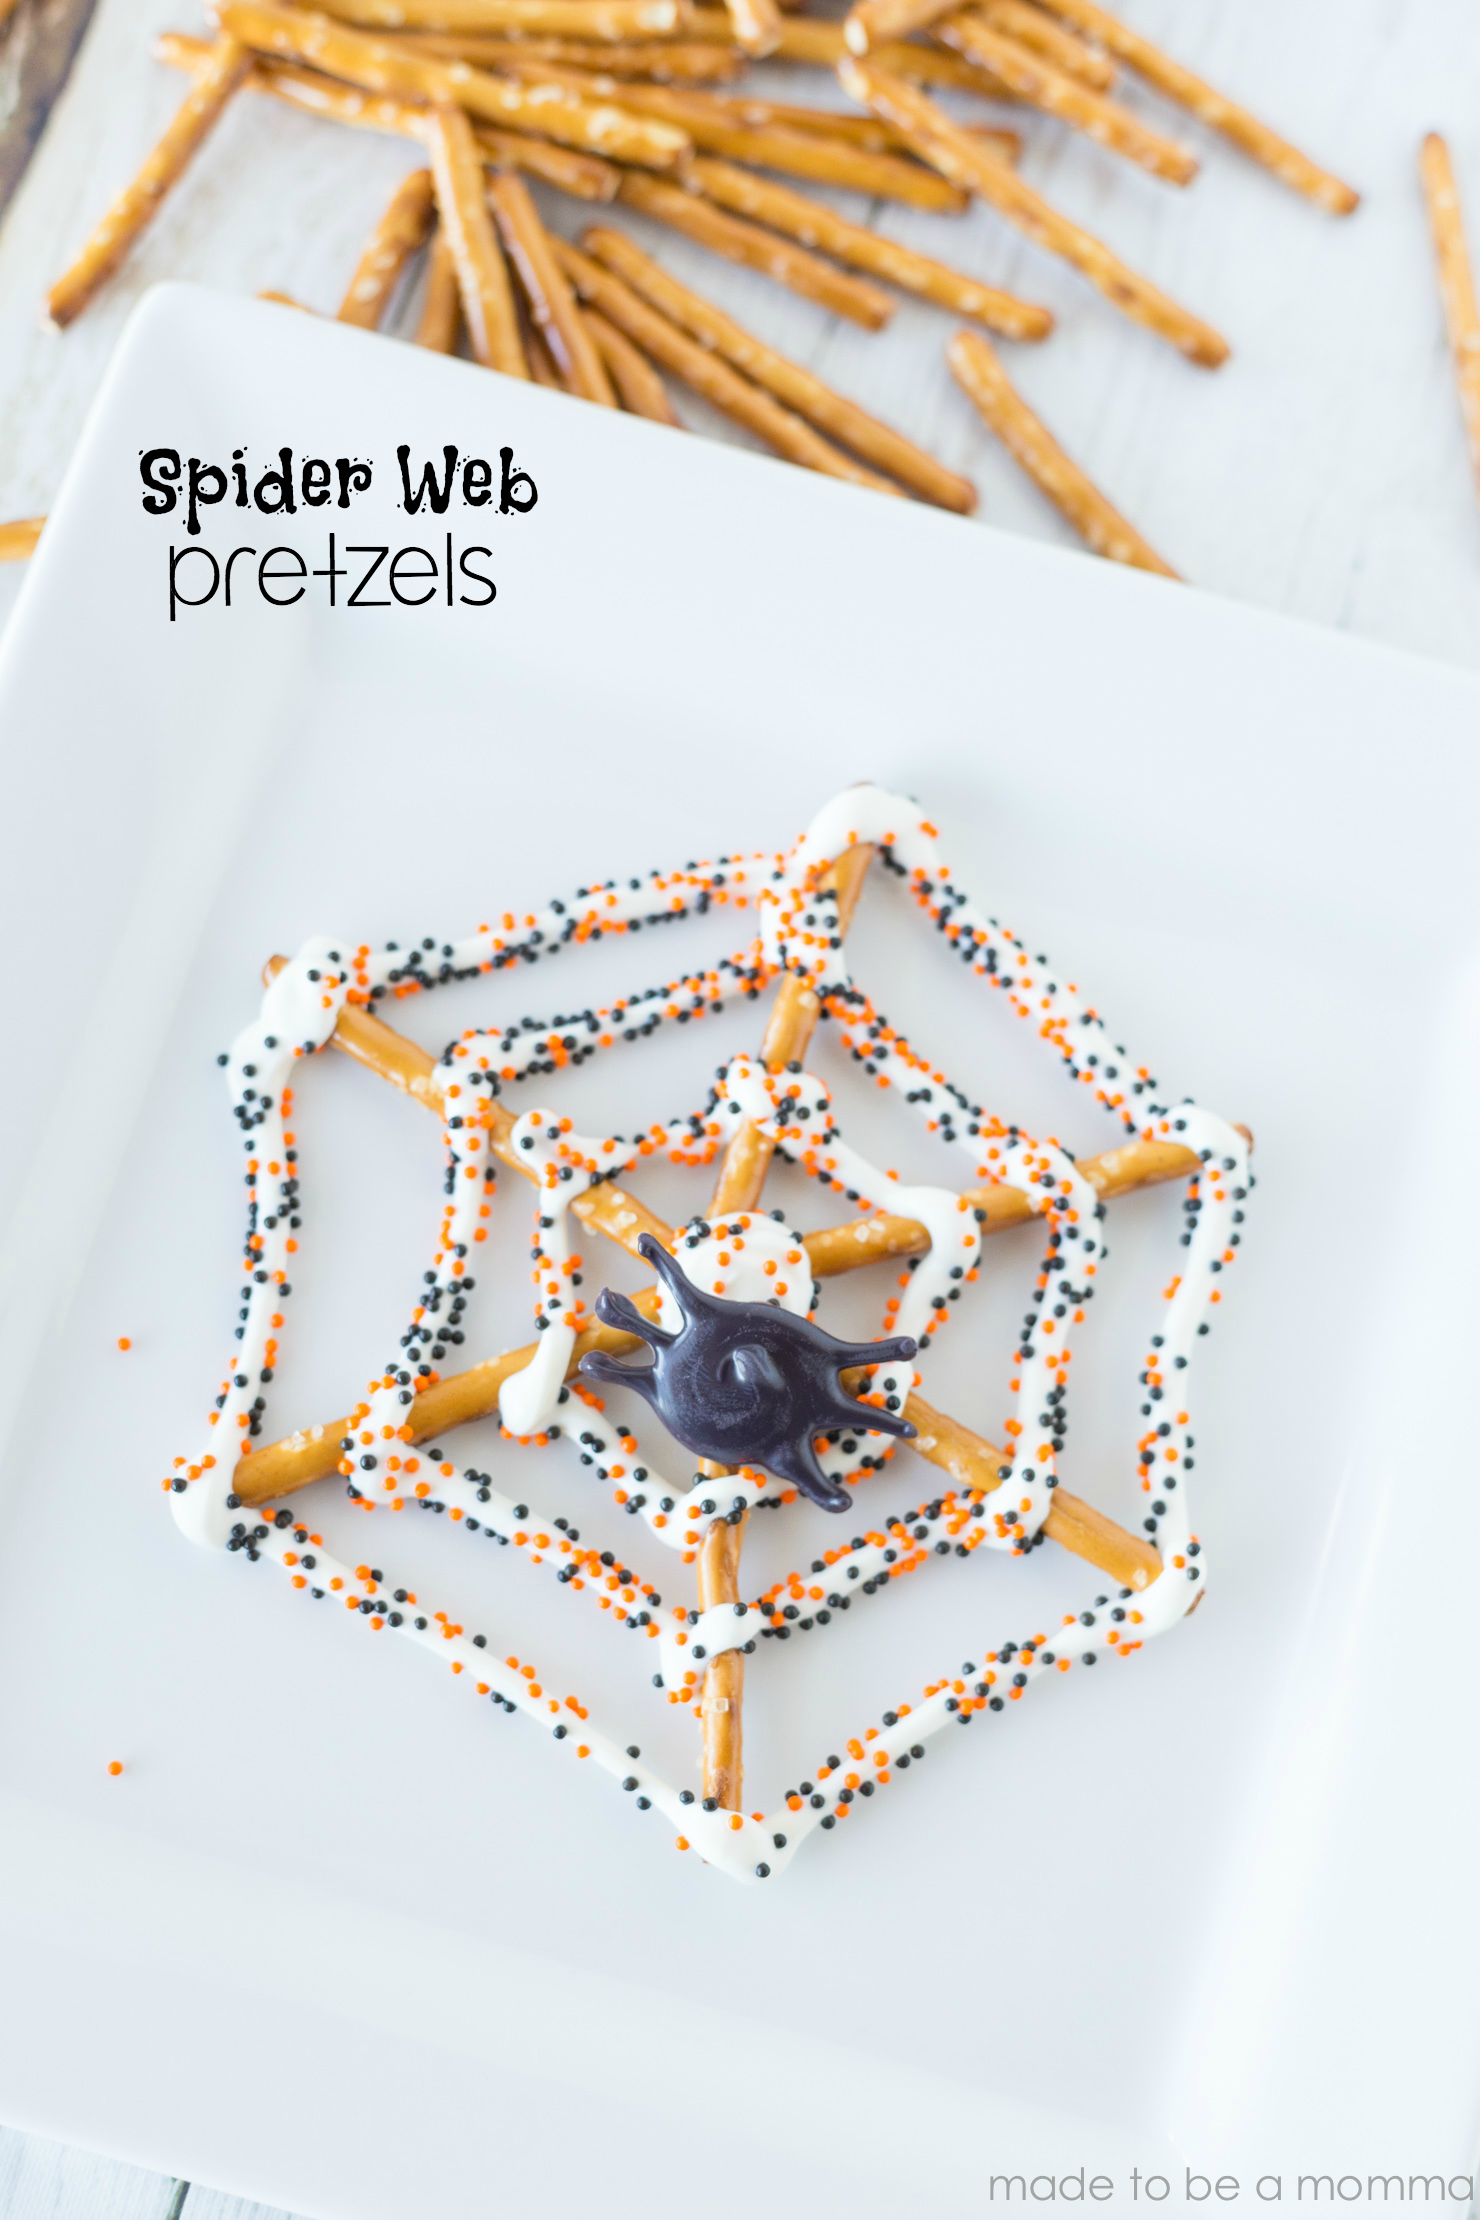 Spider Web Pretzels tutorial at madetobeamomma.com